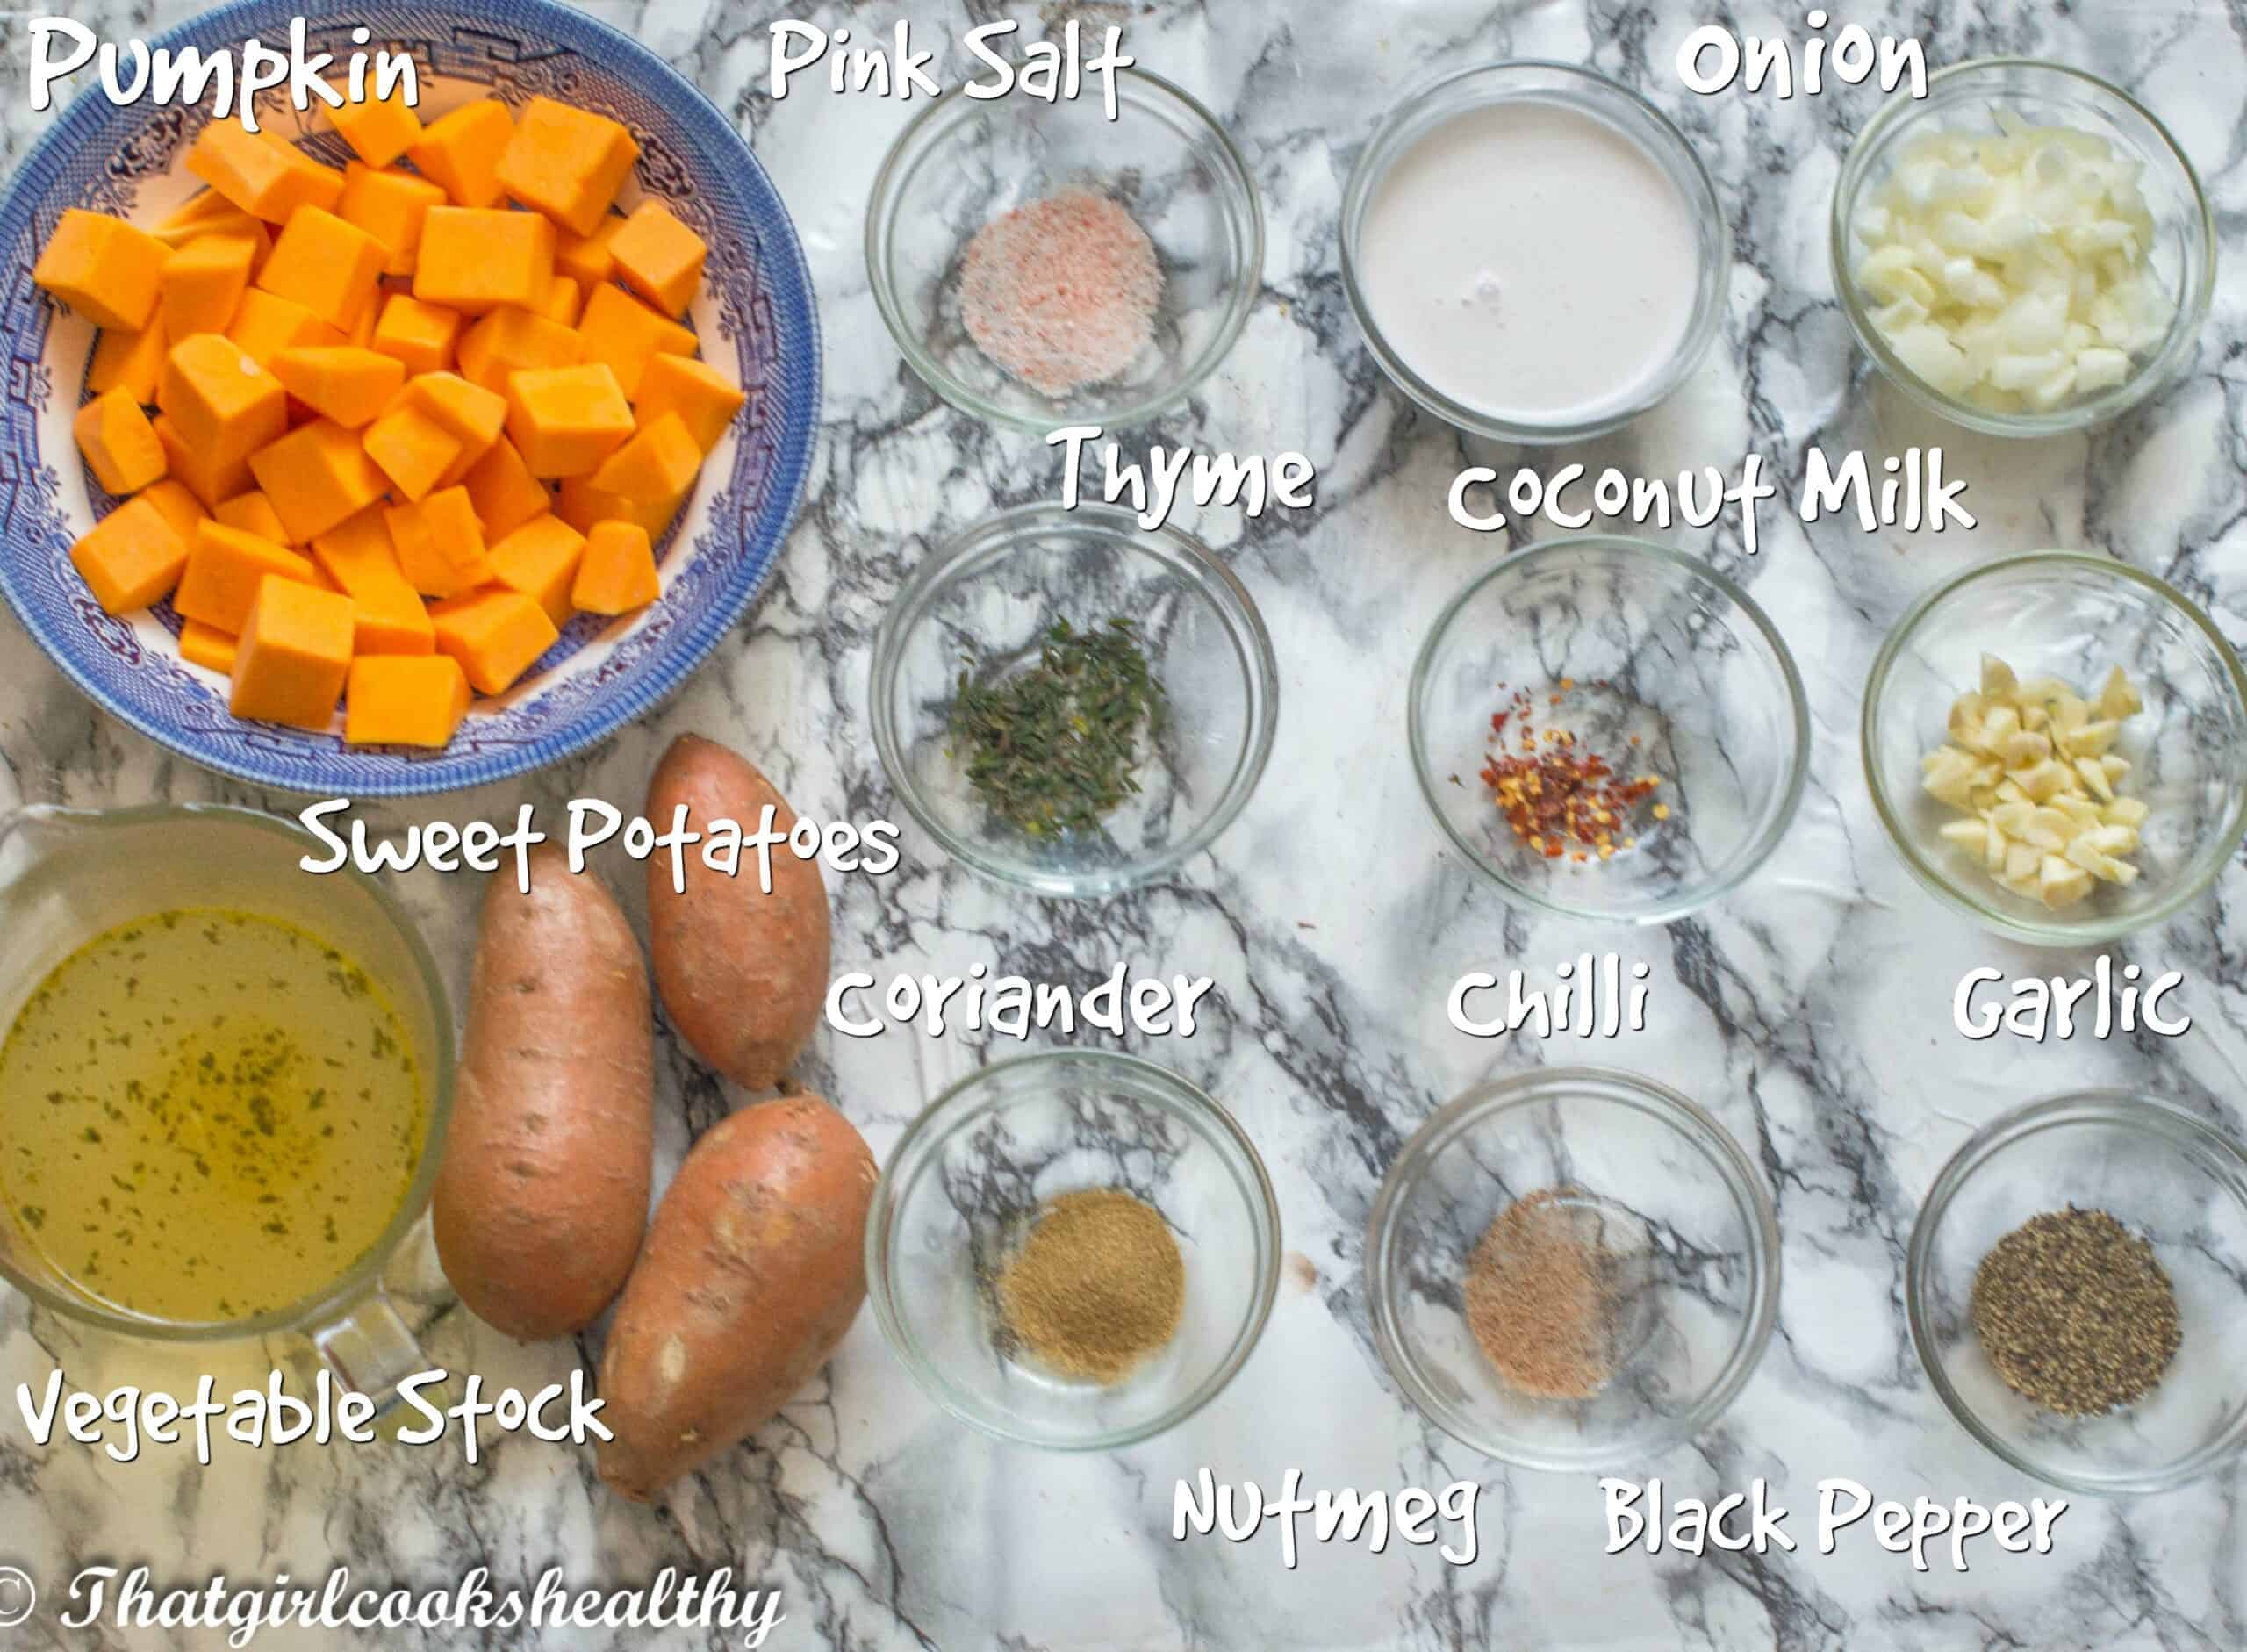 ingredients for the pumpkin and sweet potato soup